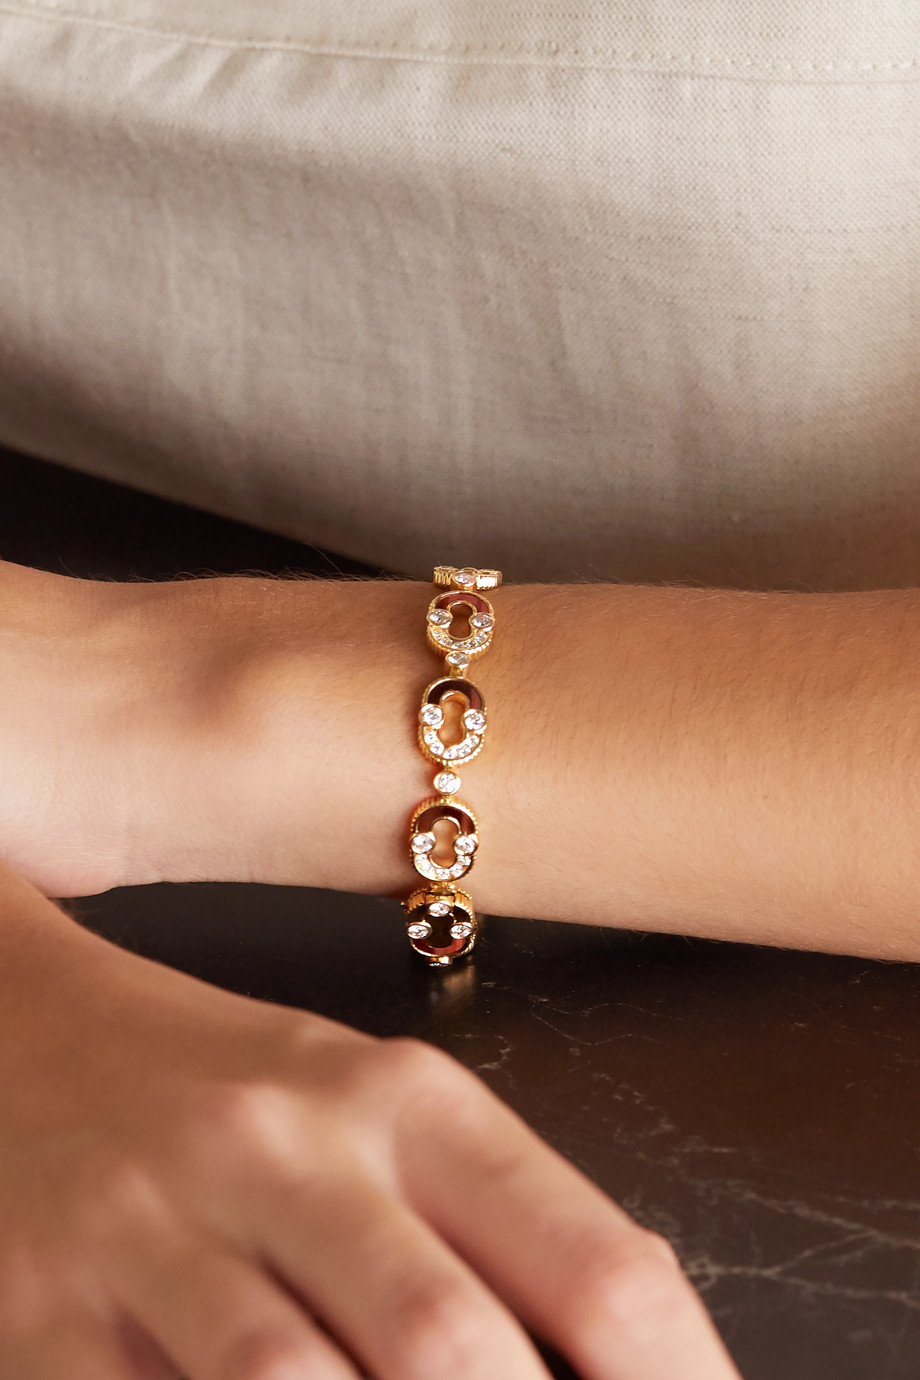 Viltier Magnetic Etreinte 18-karat gold, diamond and bull's eye bracelet